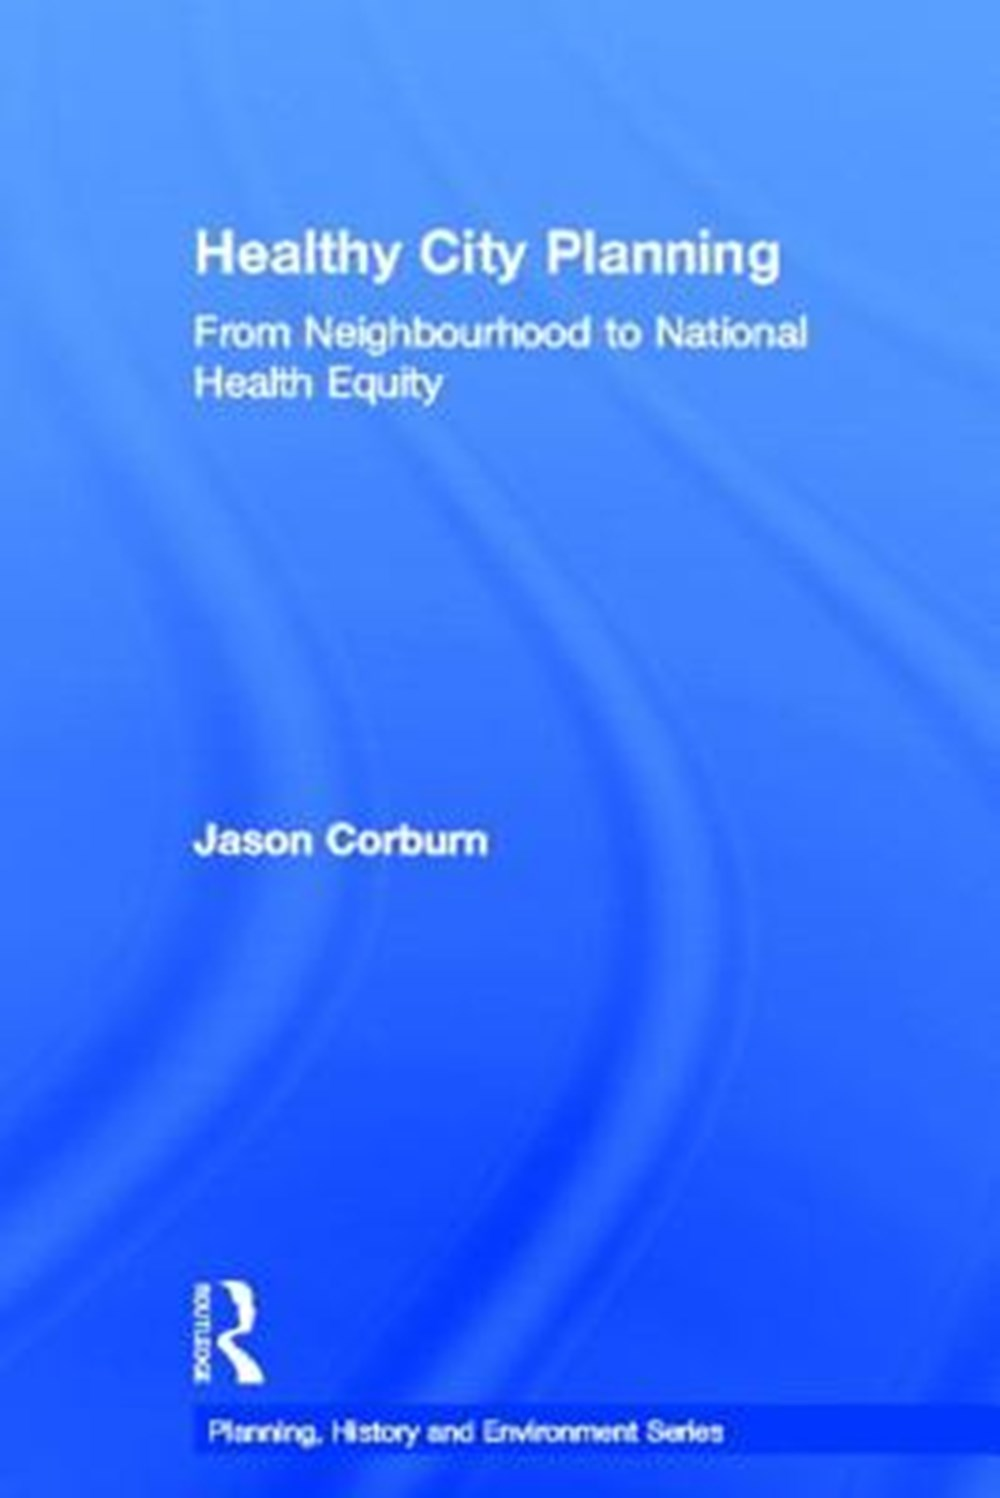 Healthy City Planning From Neighbourhood to National Health Equity